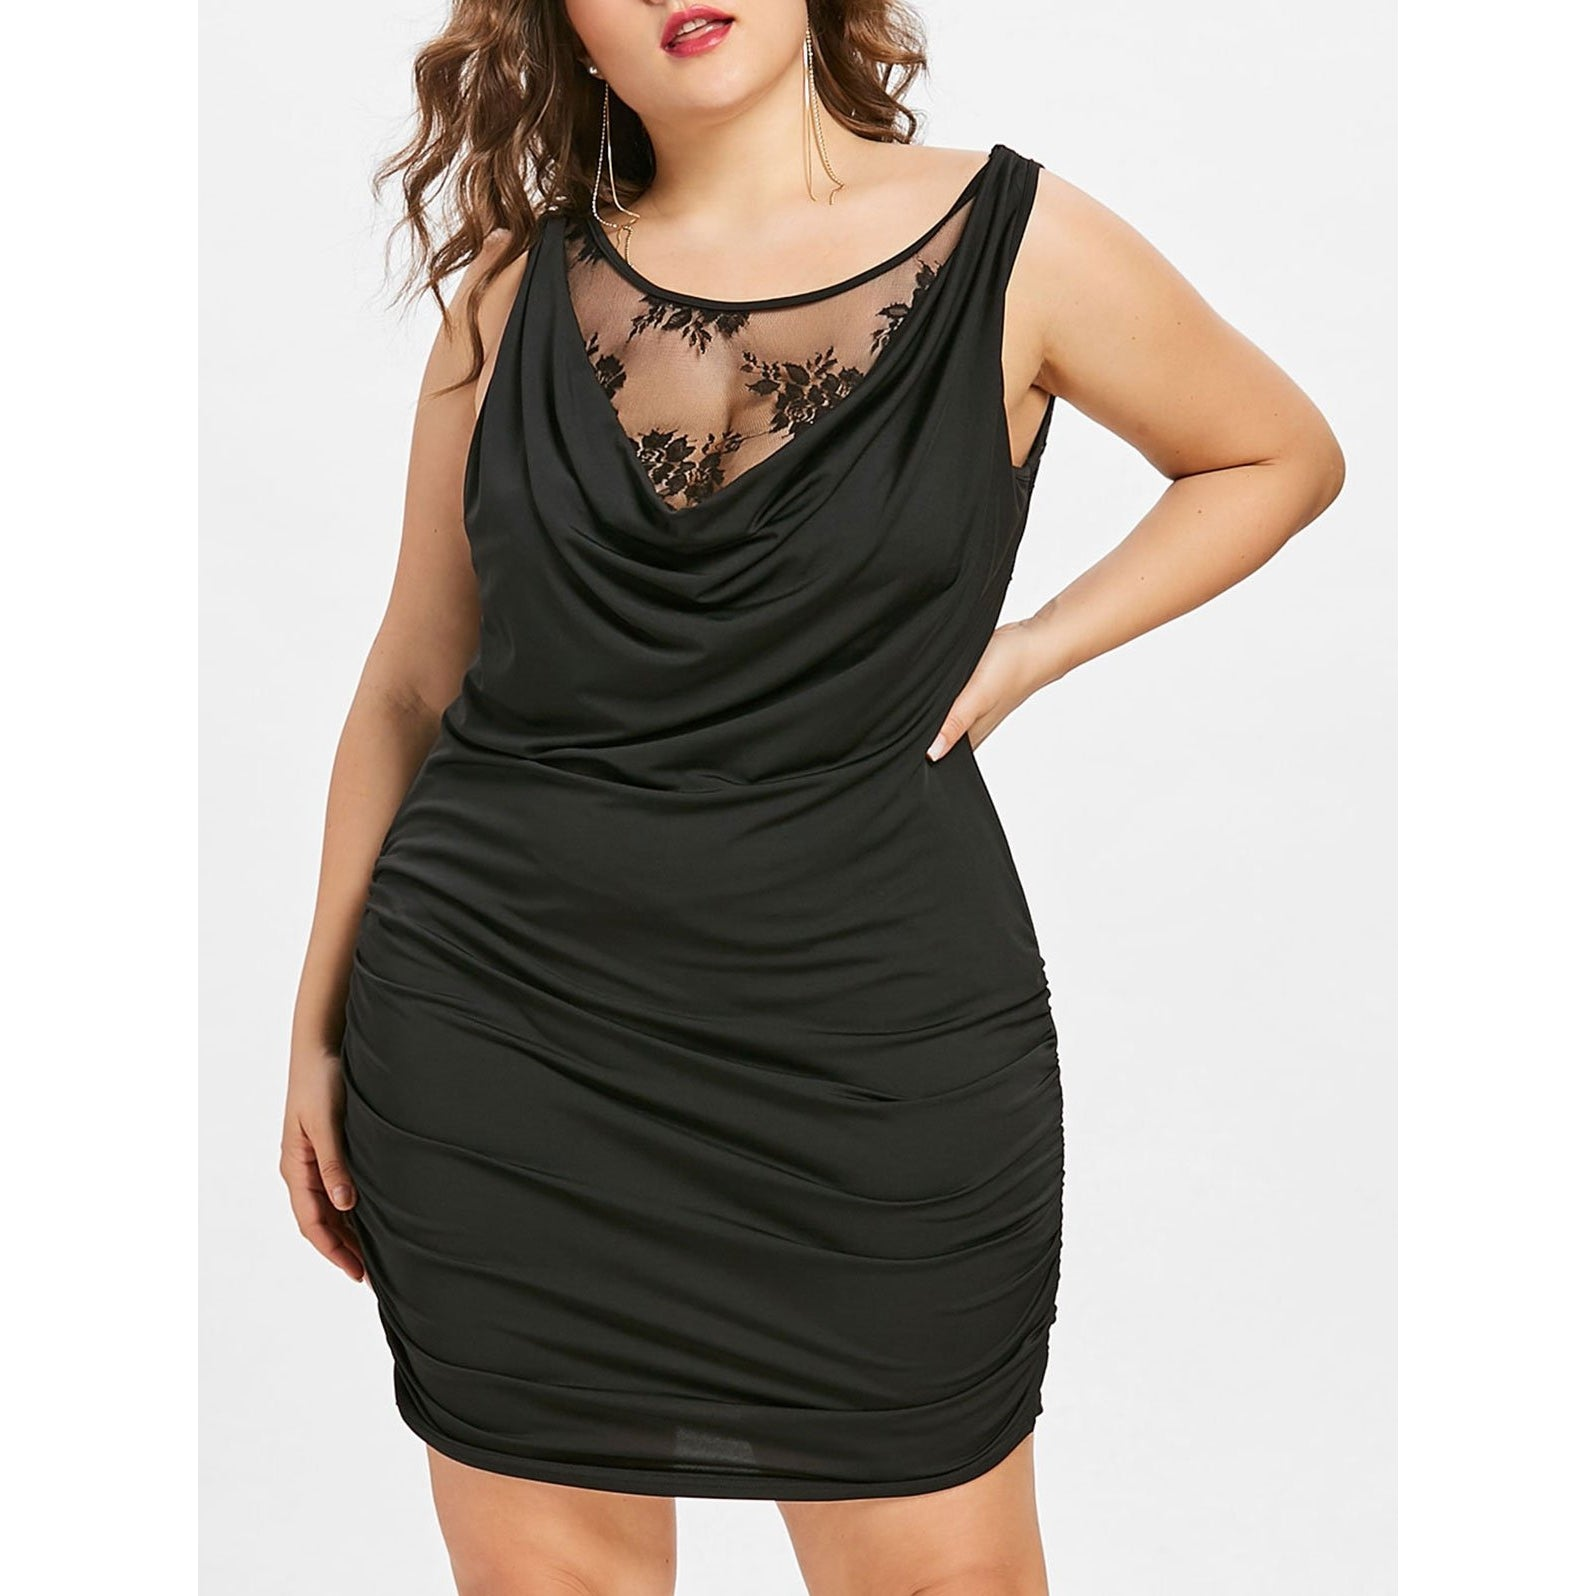 Lace Panel Plus Size Draped Club Dress, , eprolo - MAK Kouture